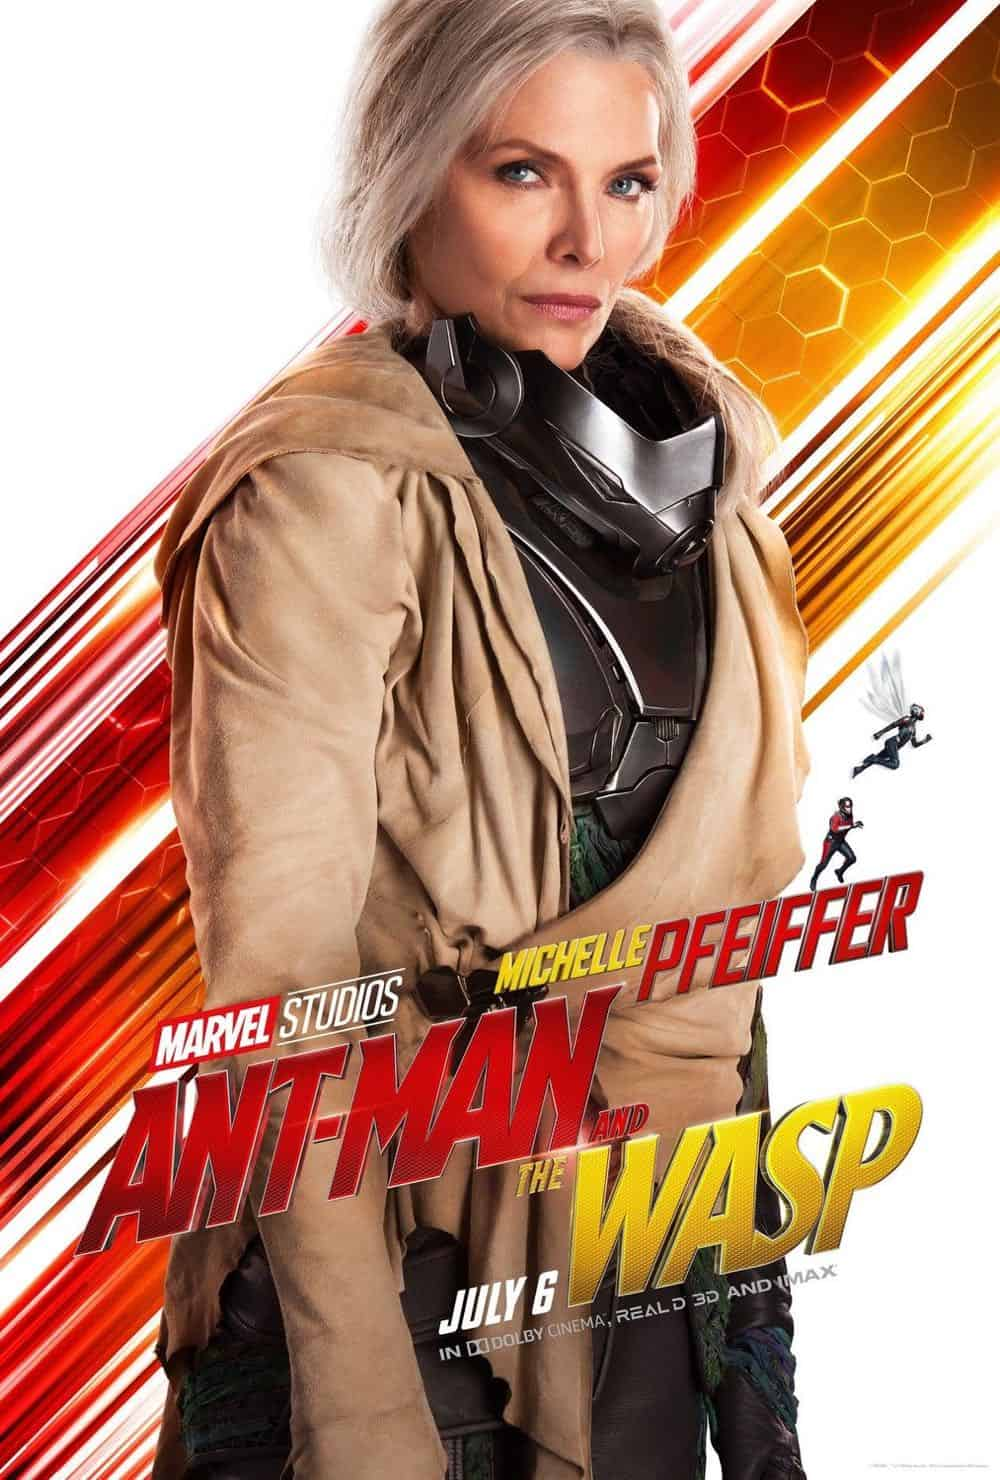 Ant-Man-And-The-Wasp-Movie-Character-Poster-Michelle-Pfeiffer